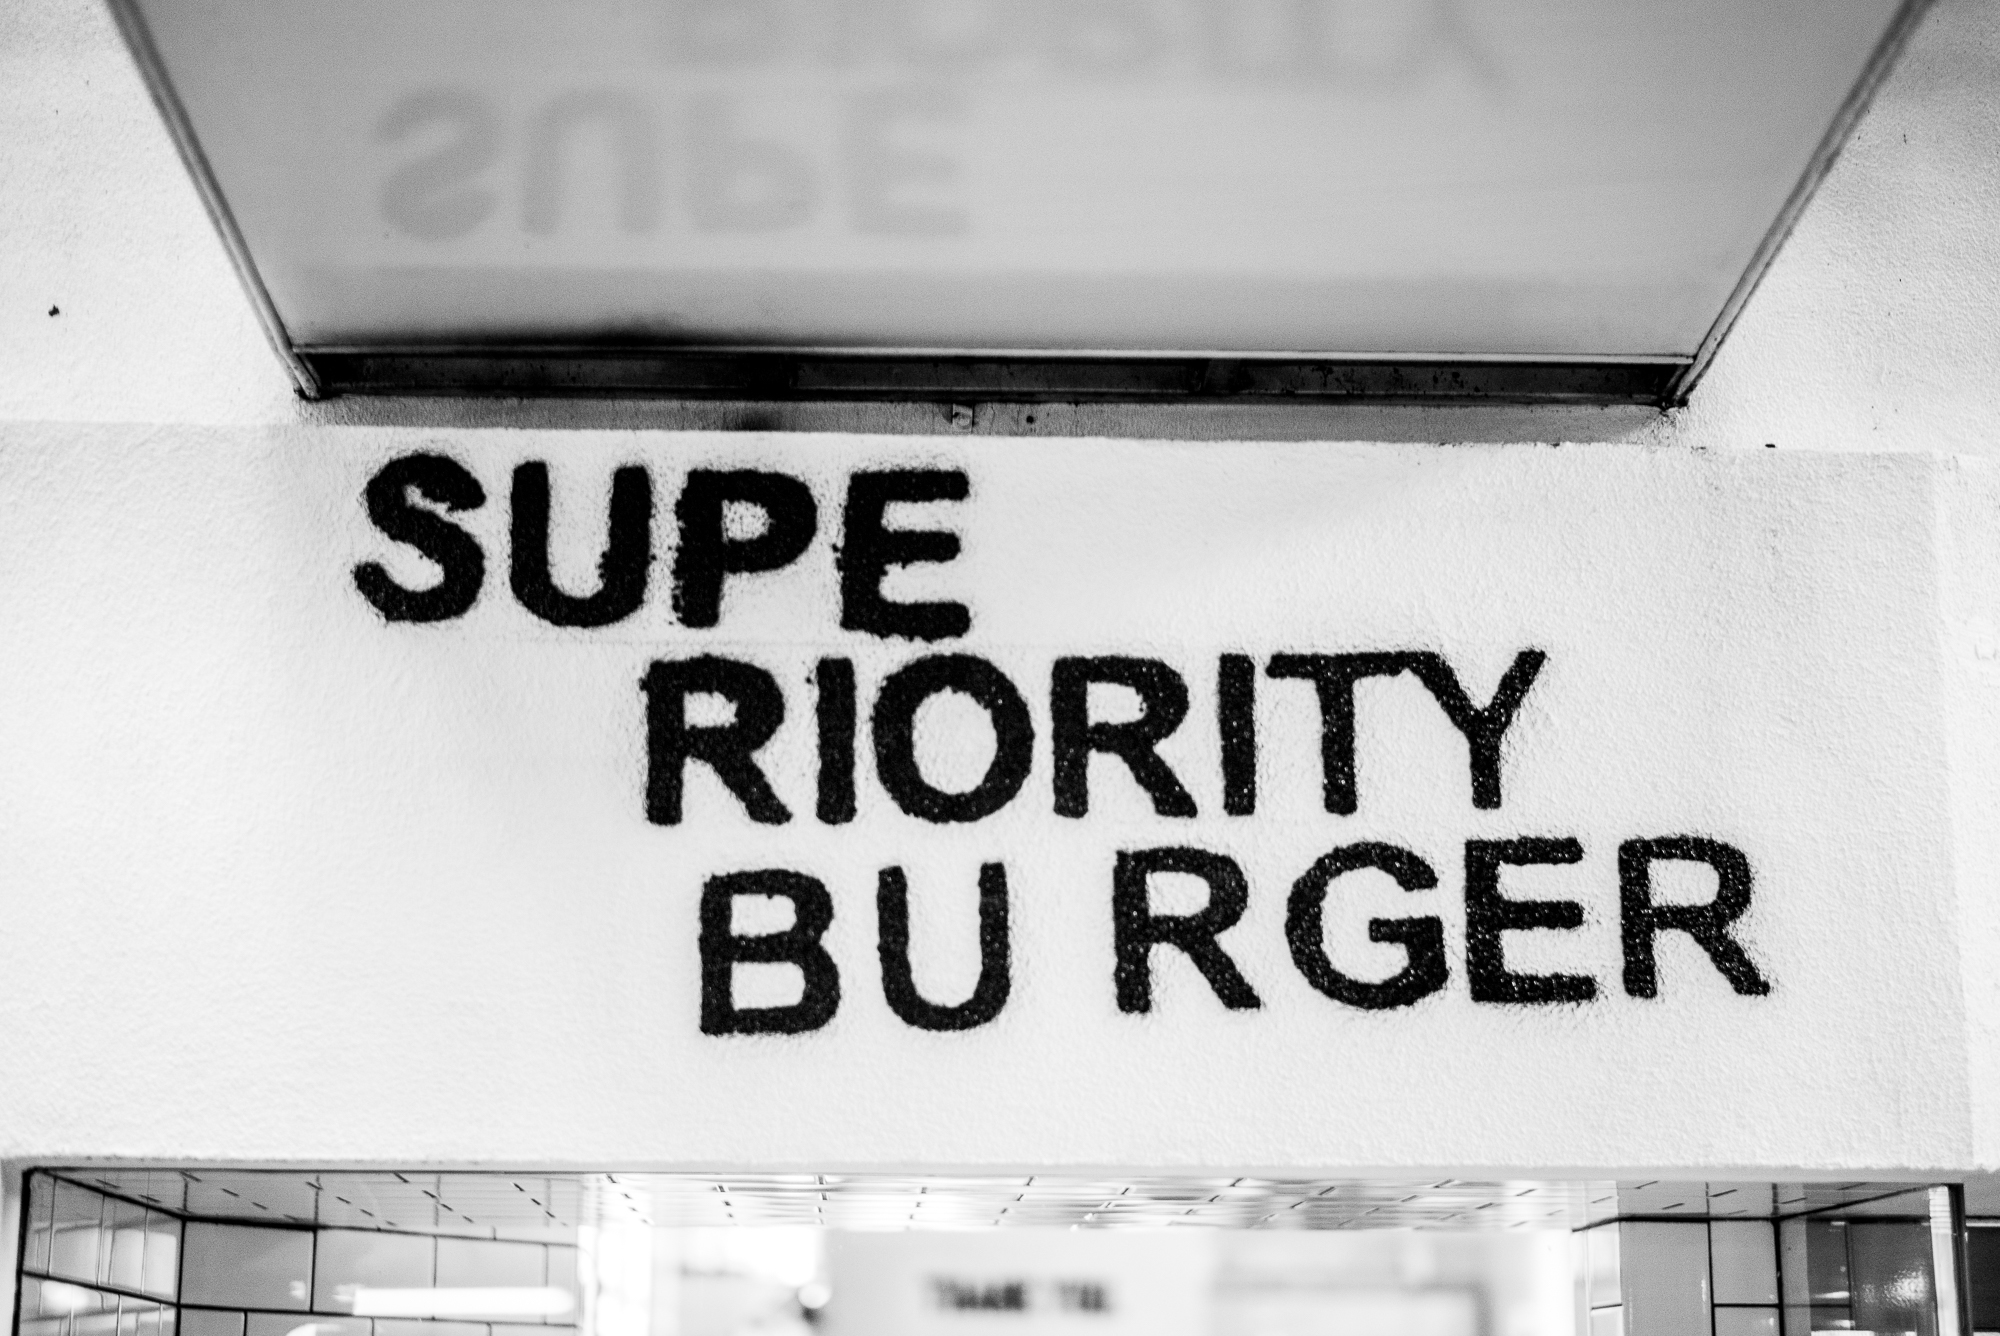 The exterior of superiority burger which shows the sign